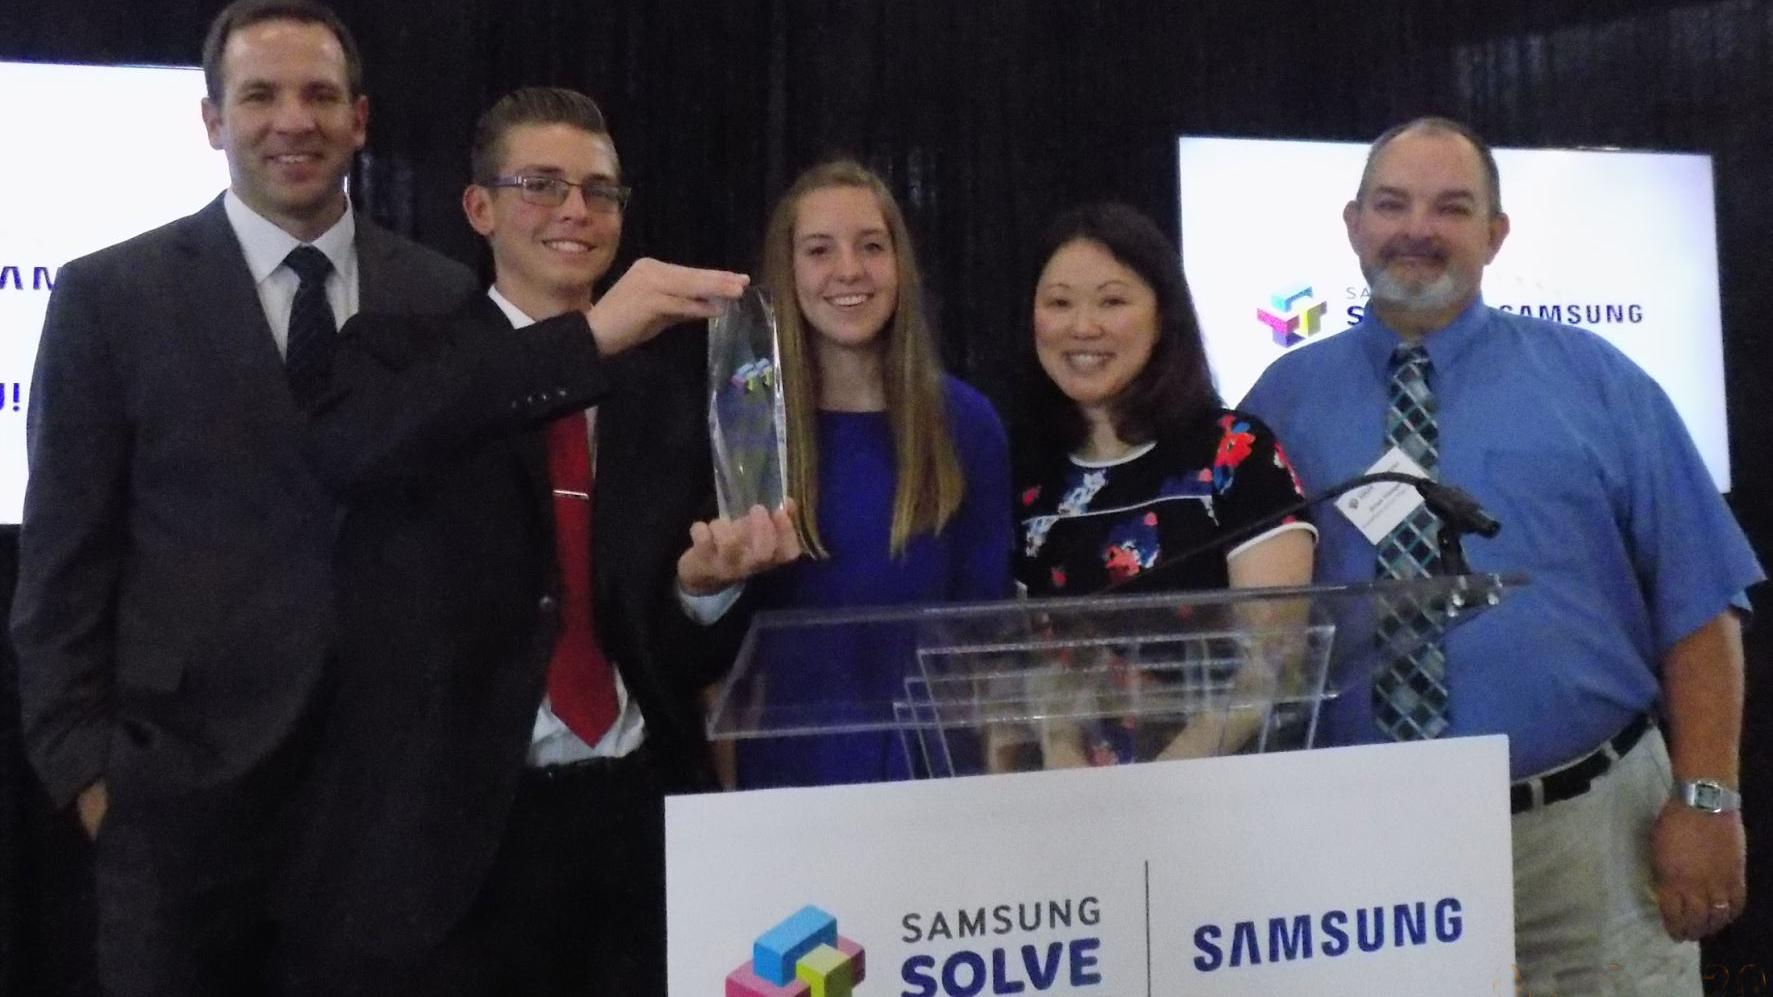 CHAMPS: Snowflake Jr. High wins Samsung Solve for Tomorrow contest